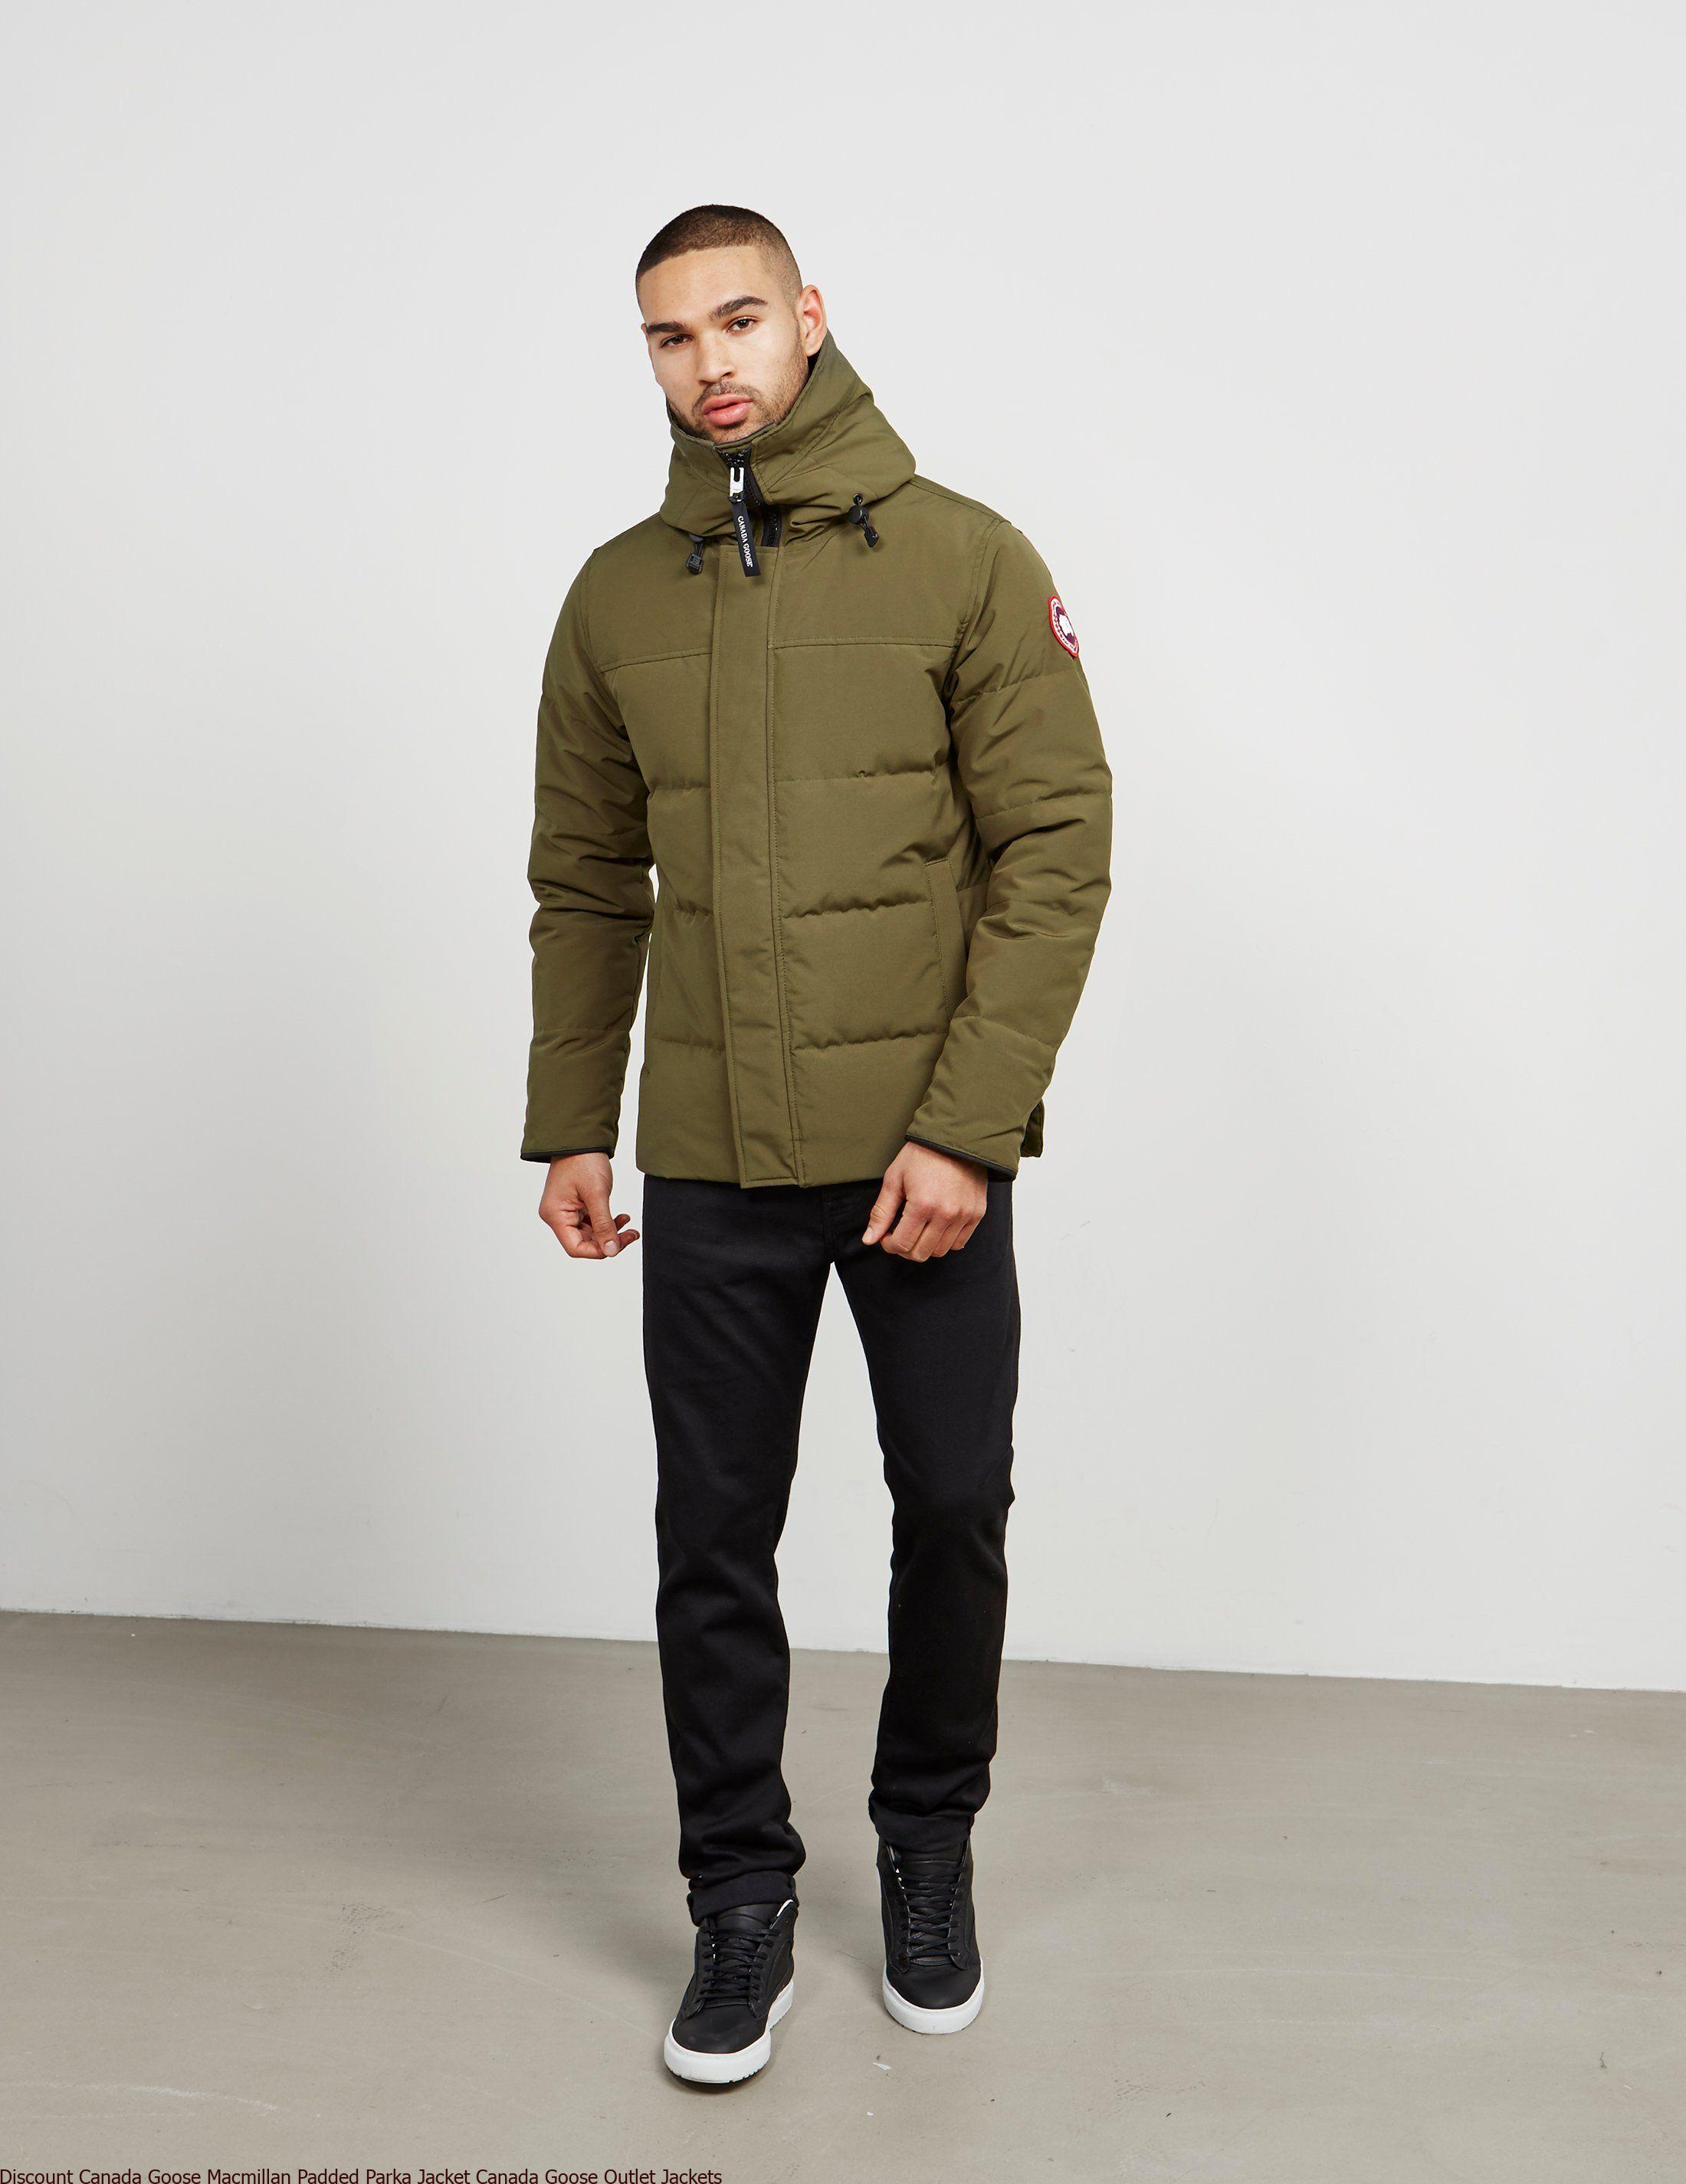 3d09ea275376 Discount Canada Goose Macmillan Padded Parka Jacket Canada Goose Outlet  Jackets – Canada Goose Outlet